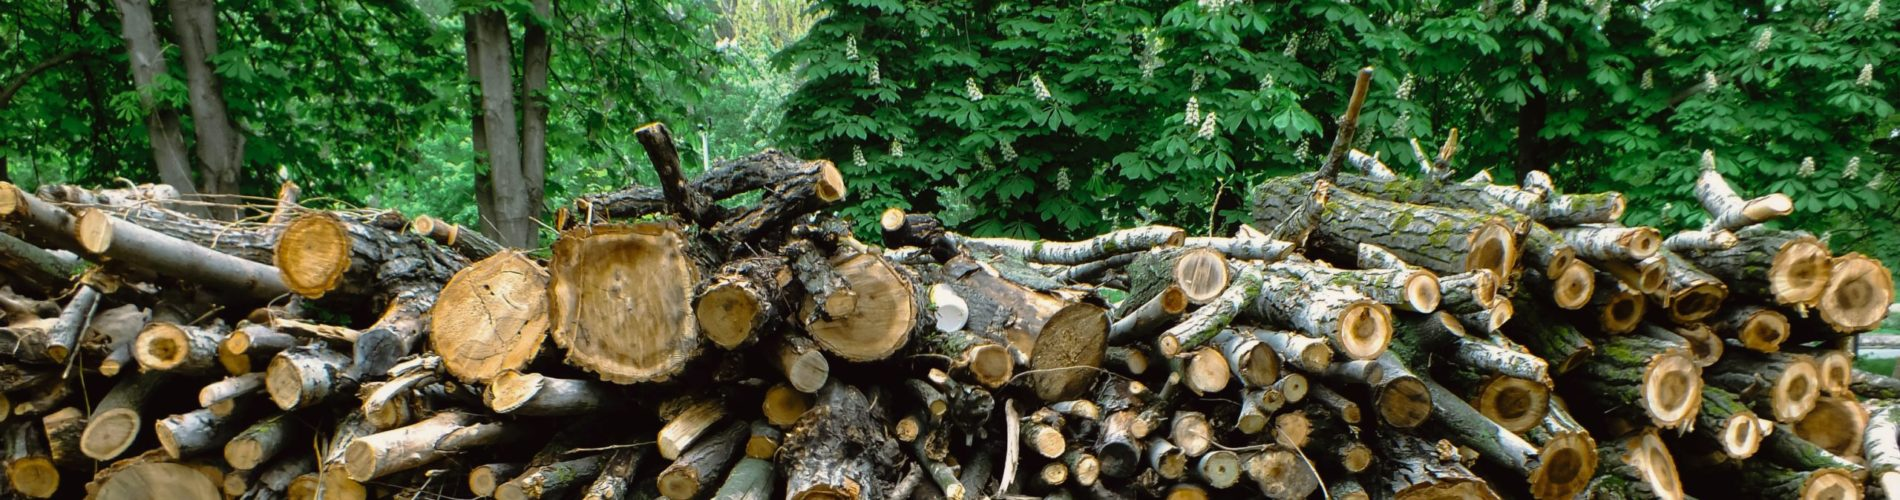 A photo of a firewood stack